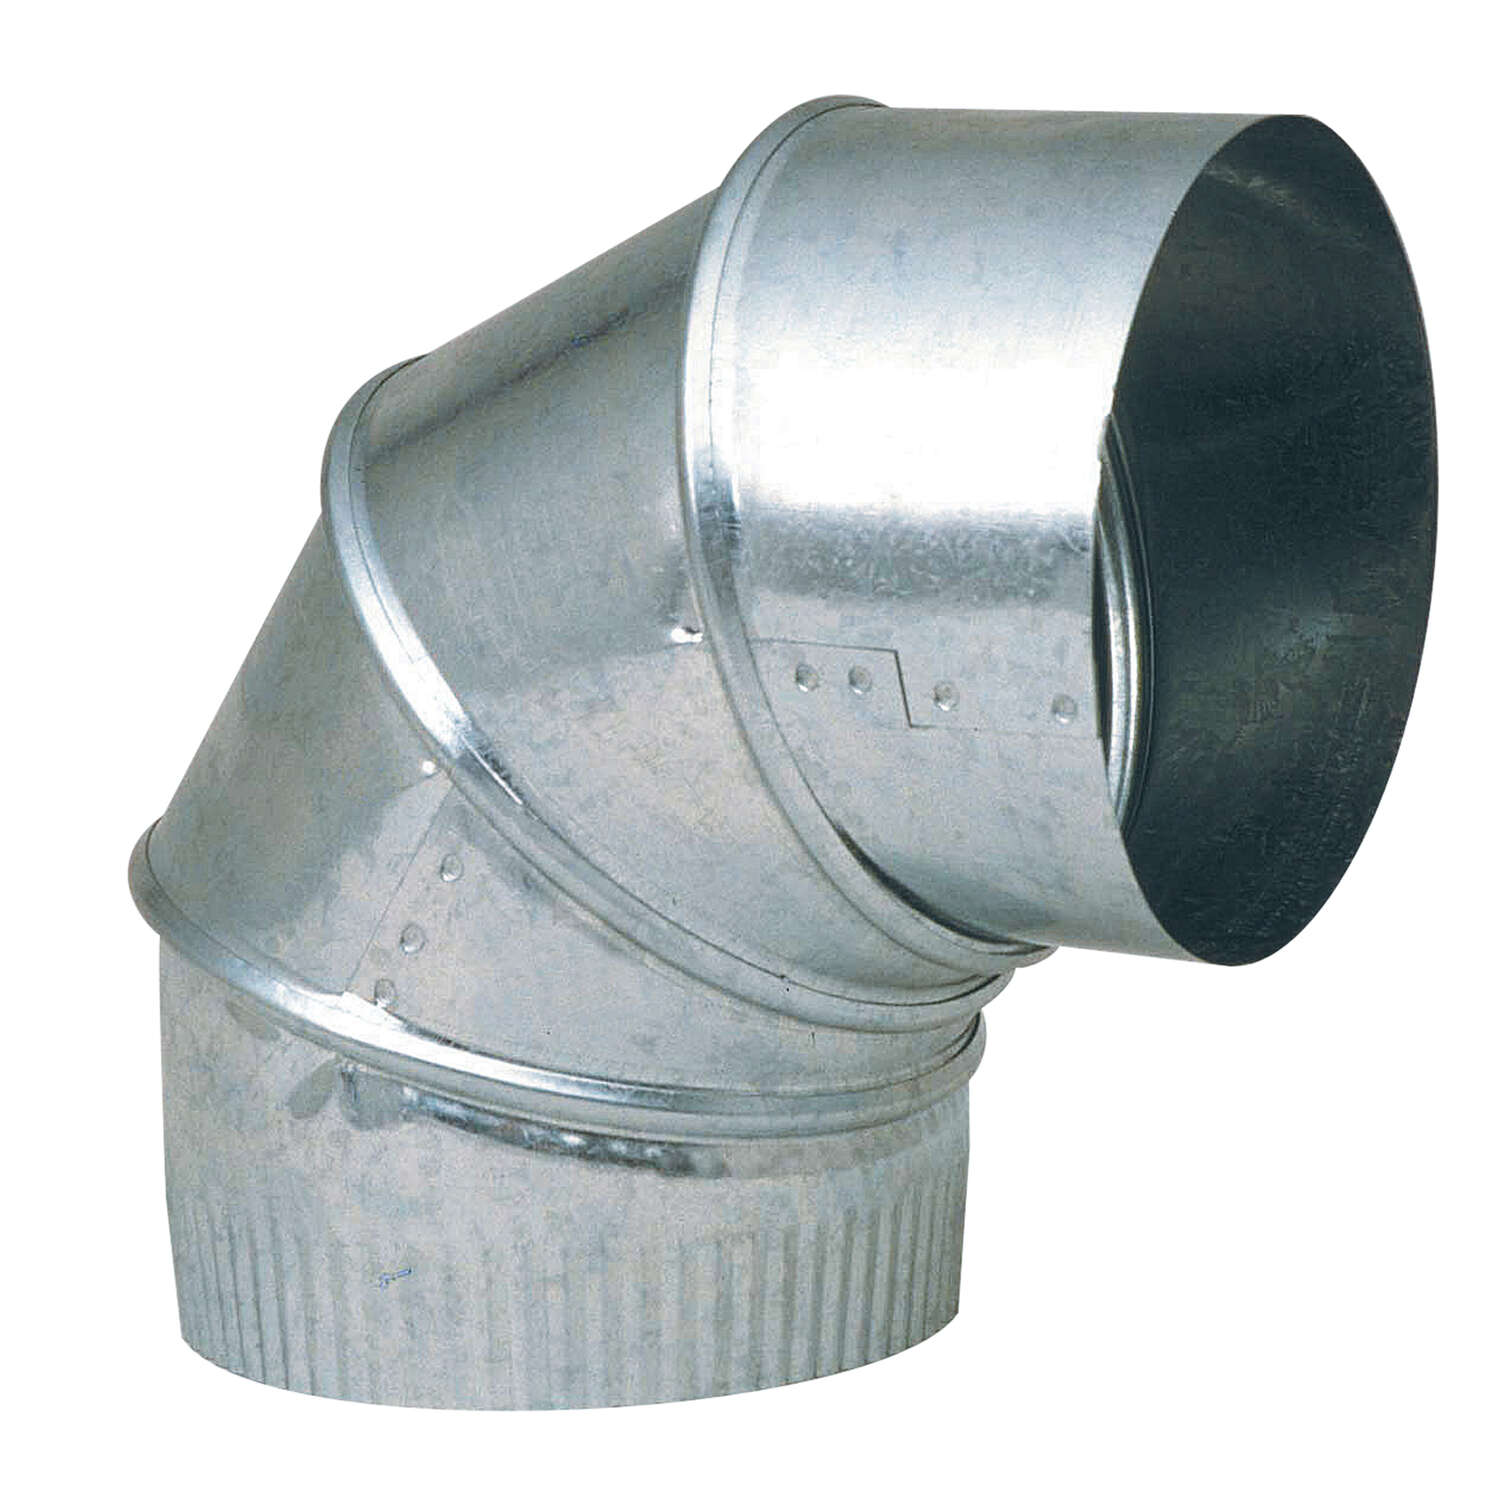 Imperial  5 in. Dia. x 5 in. Dia. Adjustable 90 deg. Galvanized Steel  Stove Pipe Elbow